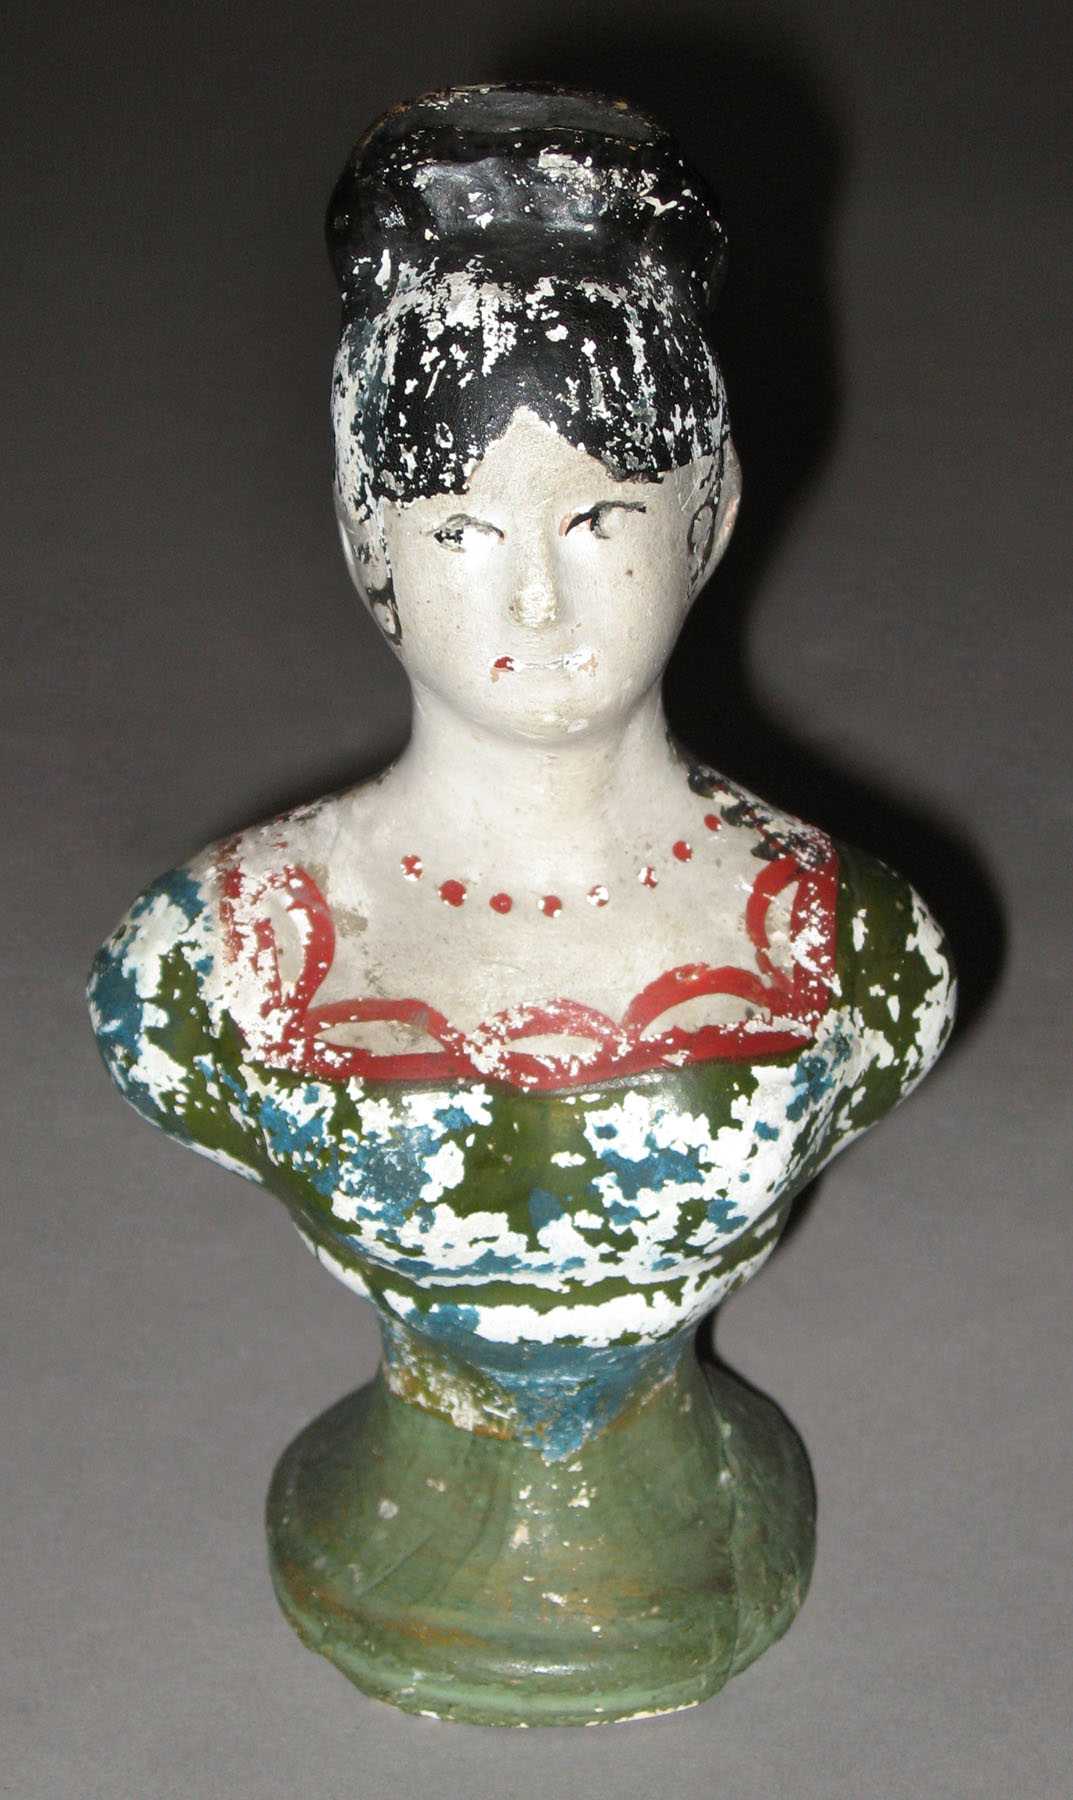 Bust (figure) - Woman